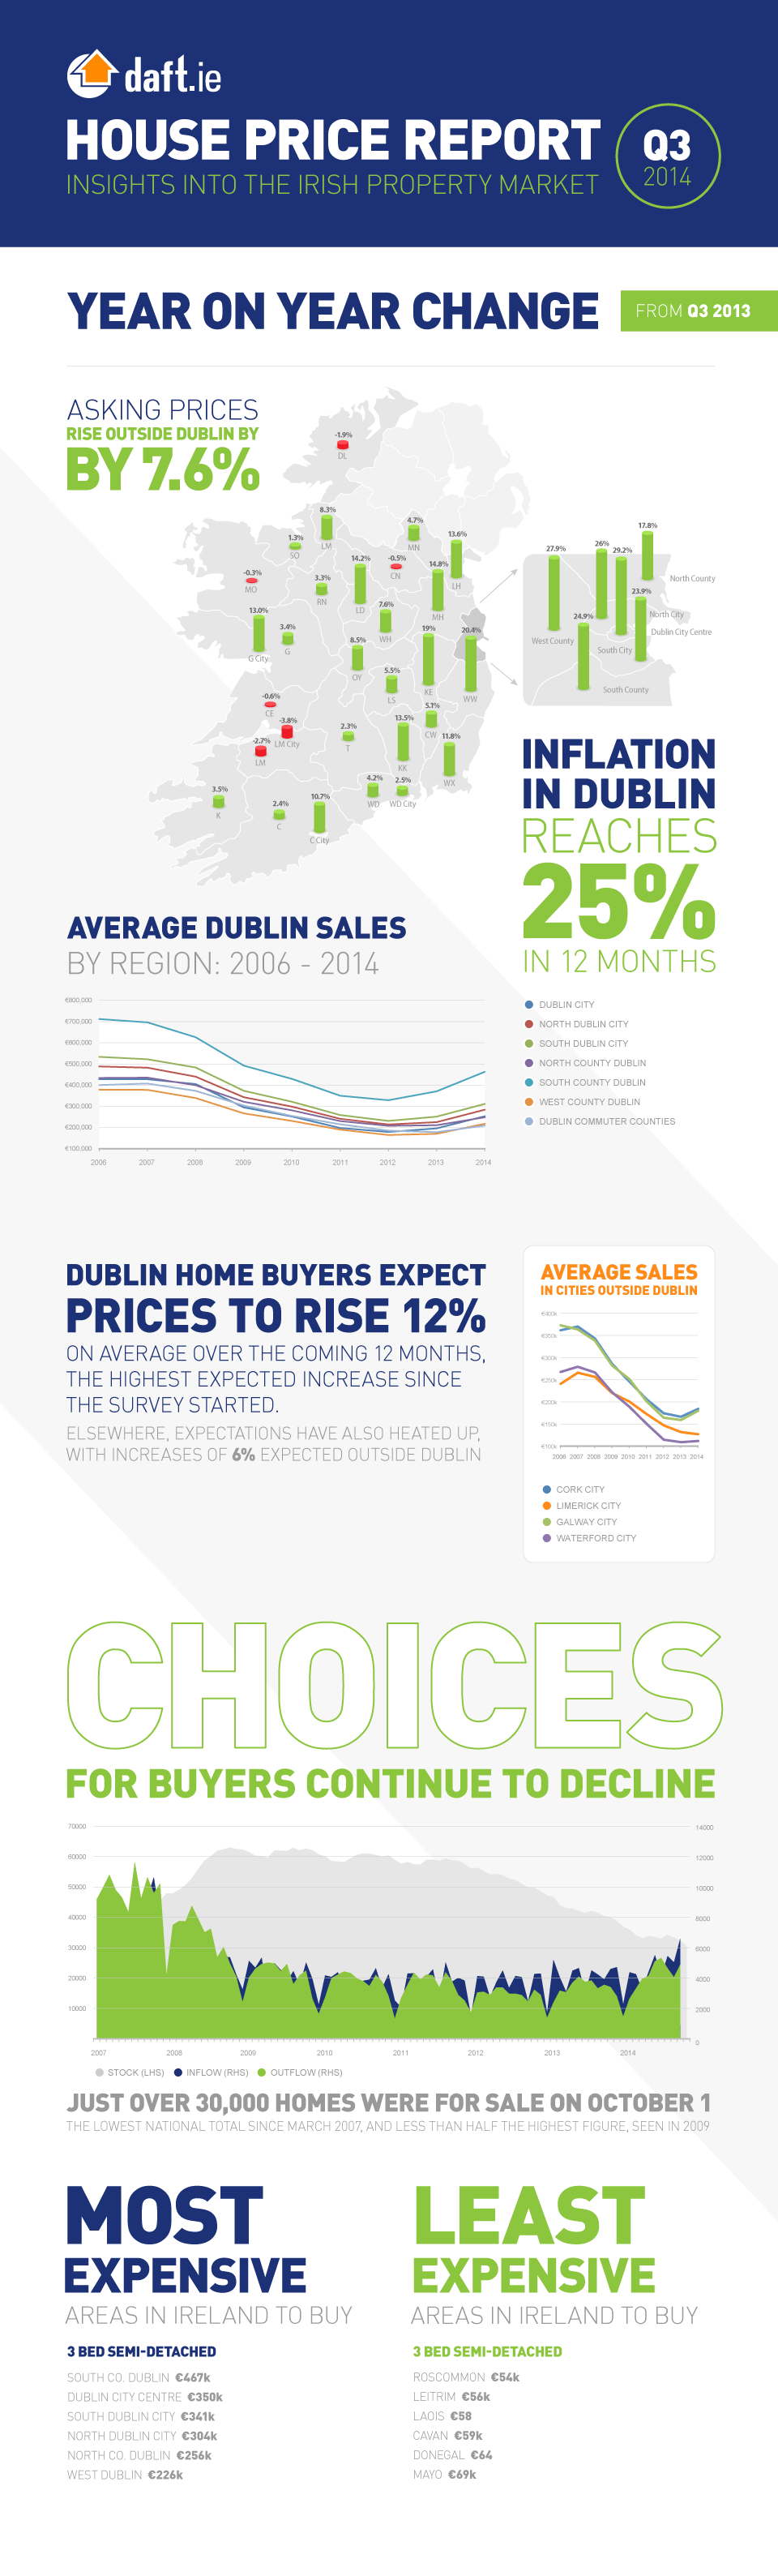 Daft.ie House Price Report: Q3, 2014 Infographic